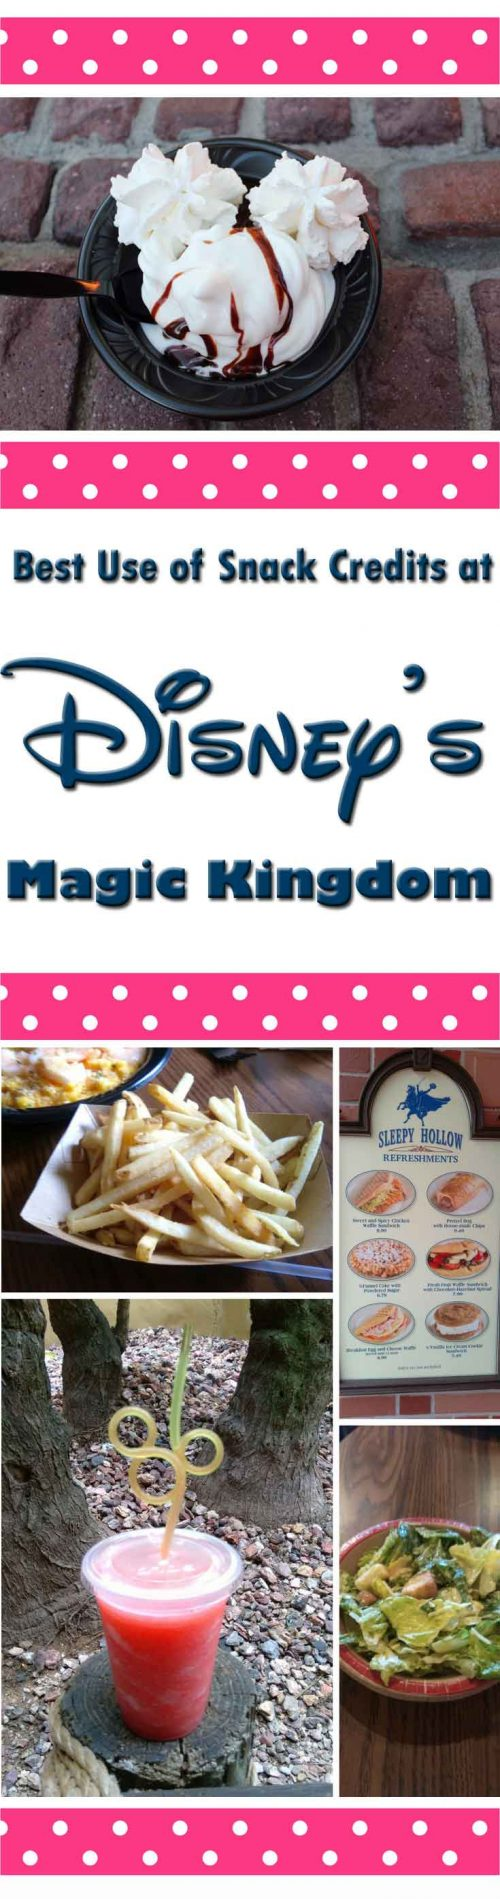 best use of snack credits in Magic Kingdom